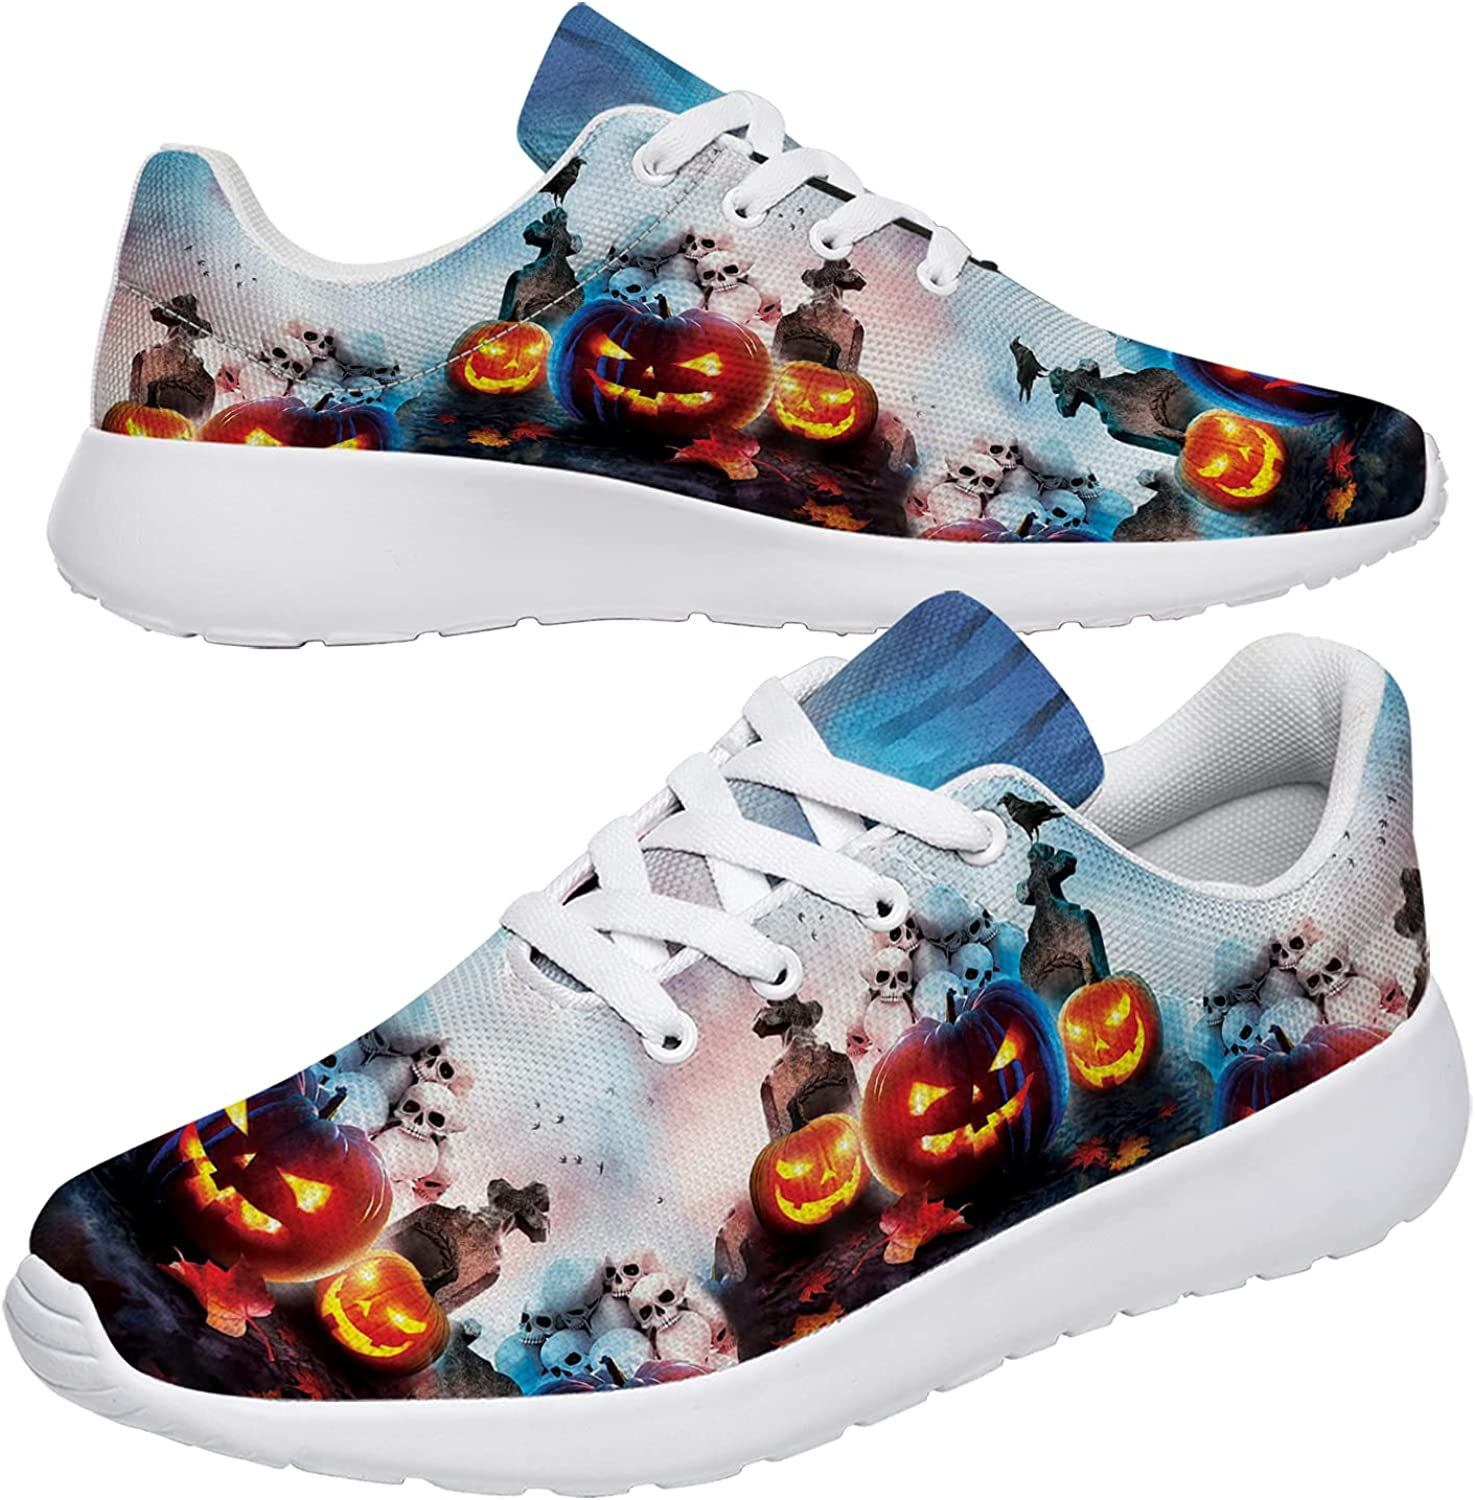 Uminder Halloween Print Shoes Women's Men's Trail Running Shoes Lightweight Sneakers Athletic Sport Walking Tennis Shoes Gifts for Travel